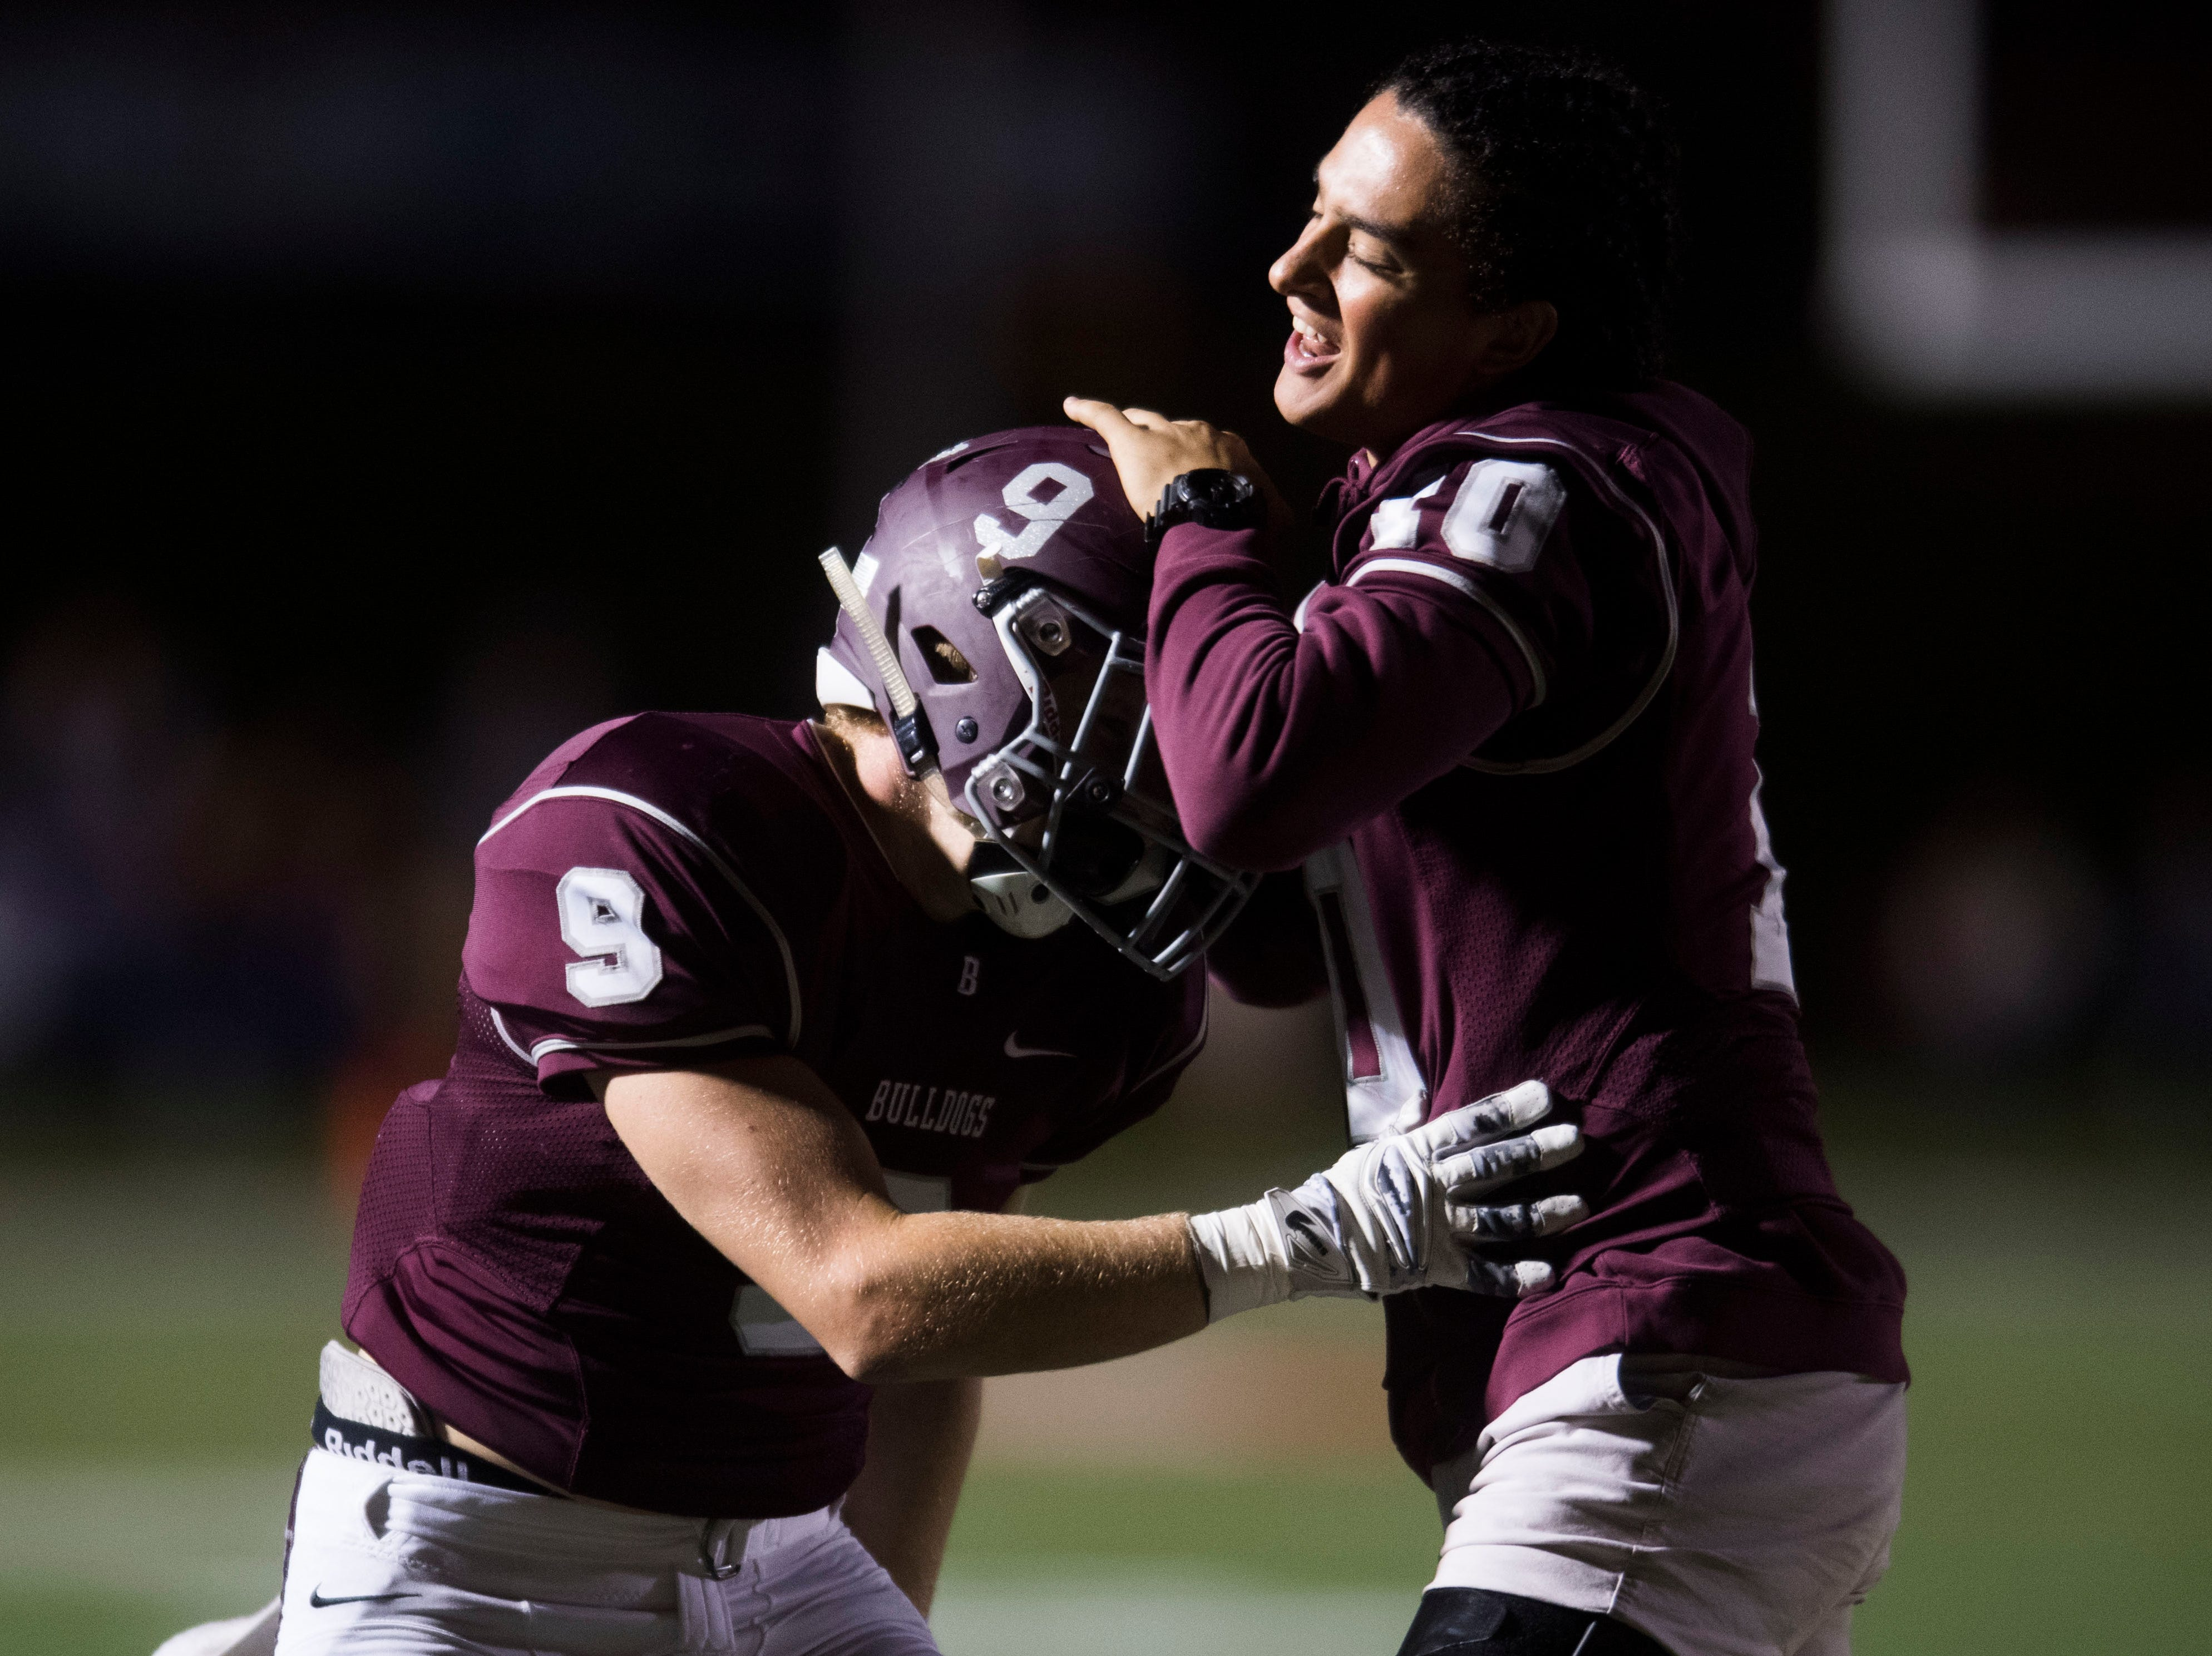 Bearden's Jackson Biggs (9) celebrates with a teammate during a game between Bearden and Farragut at Bearden Thursday, Oct. 11, 2018. Bearden took down Farragut 17-13.